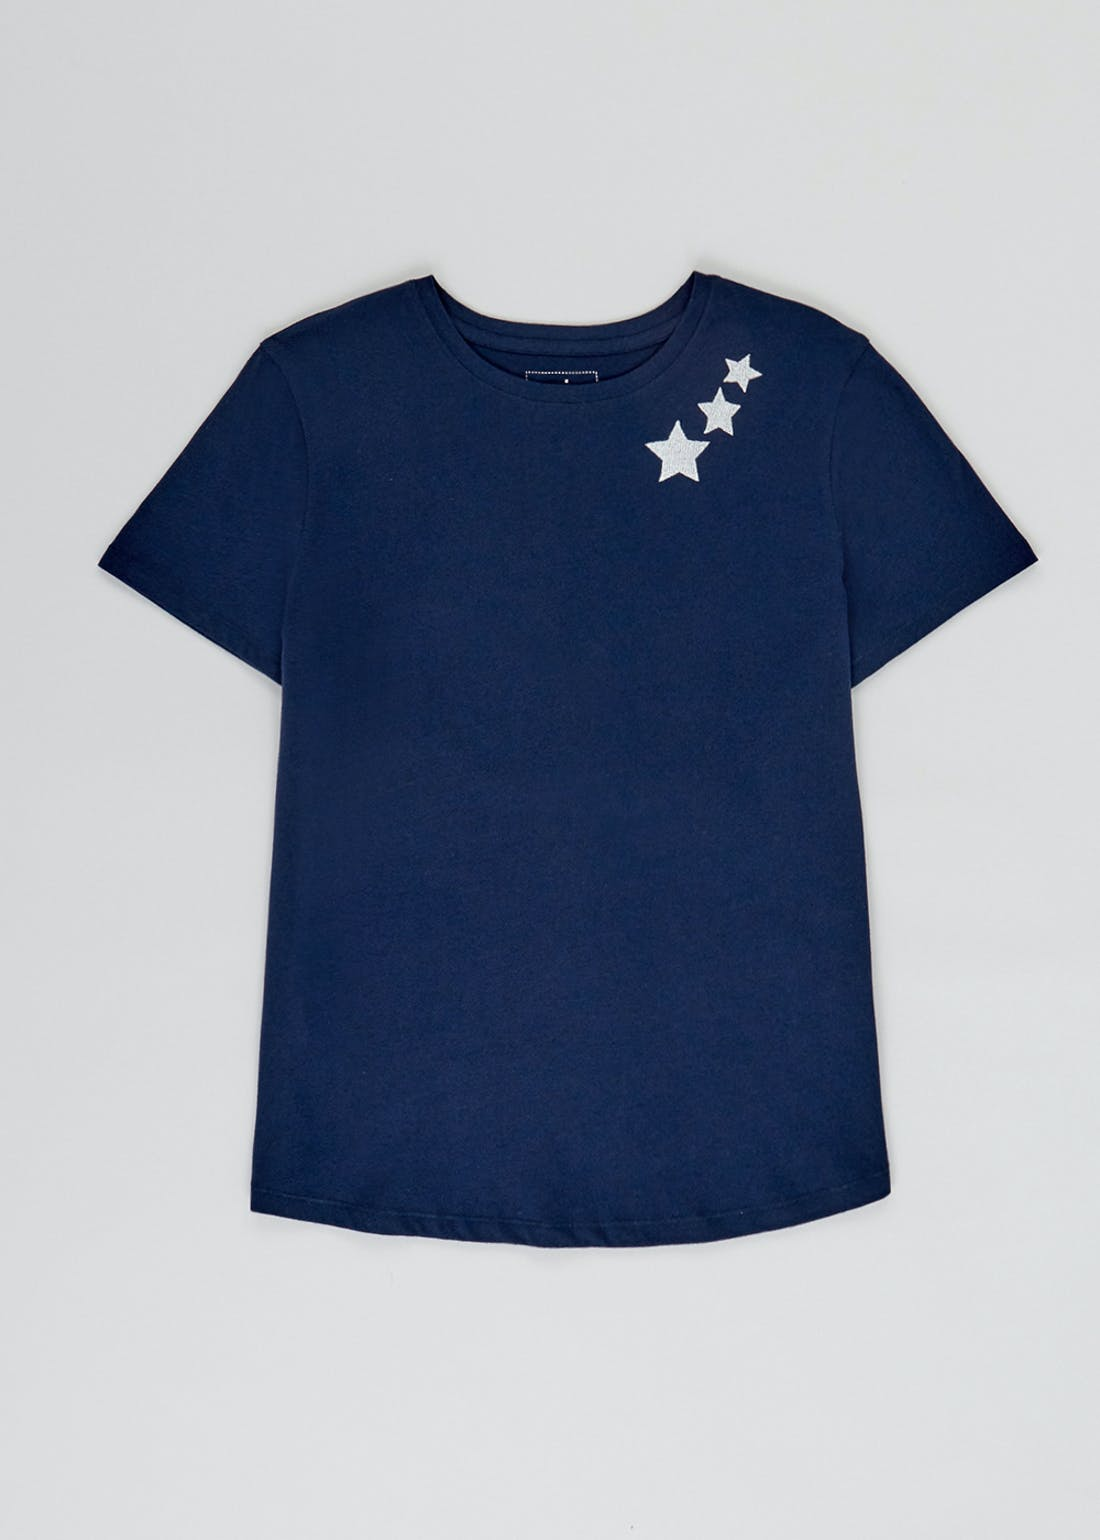 Mix & Match Embroidered Star Pyjama Top